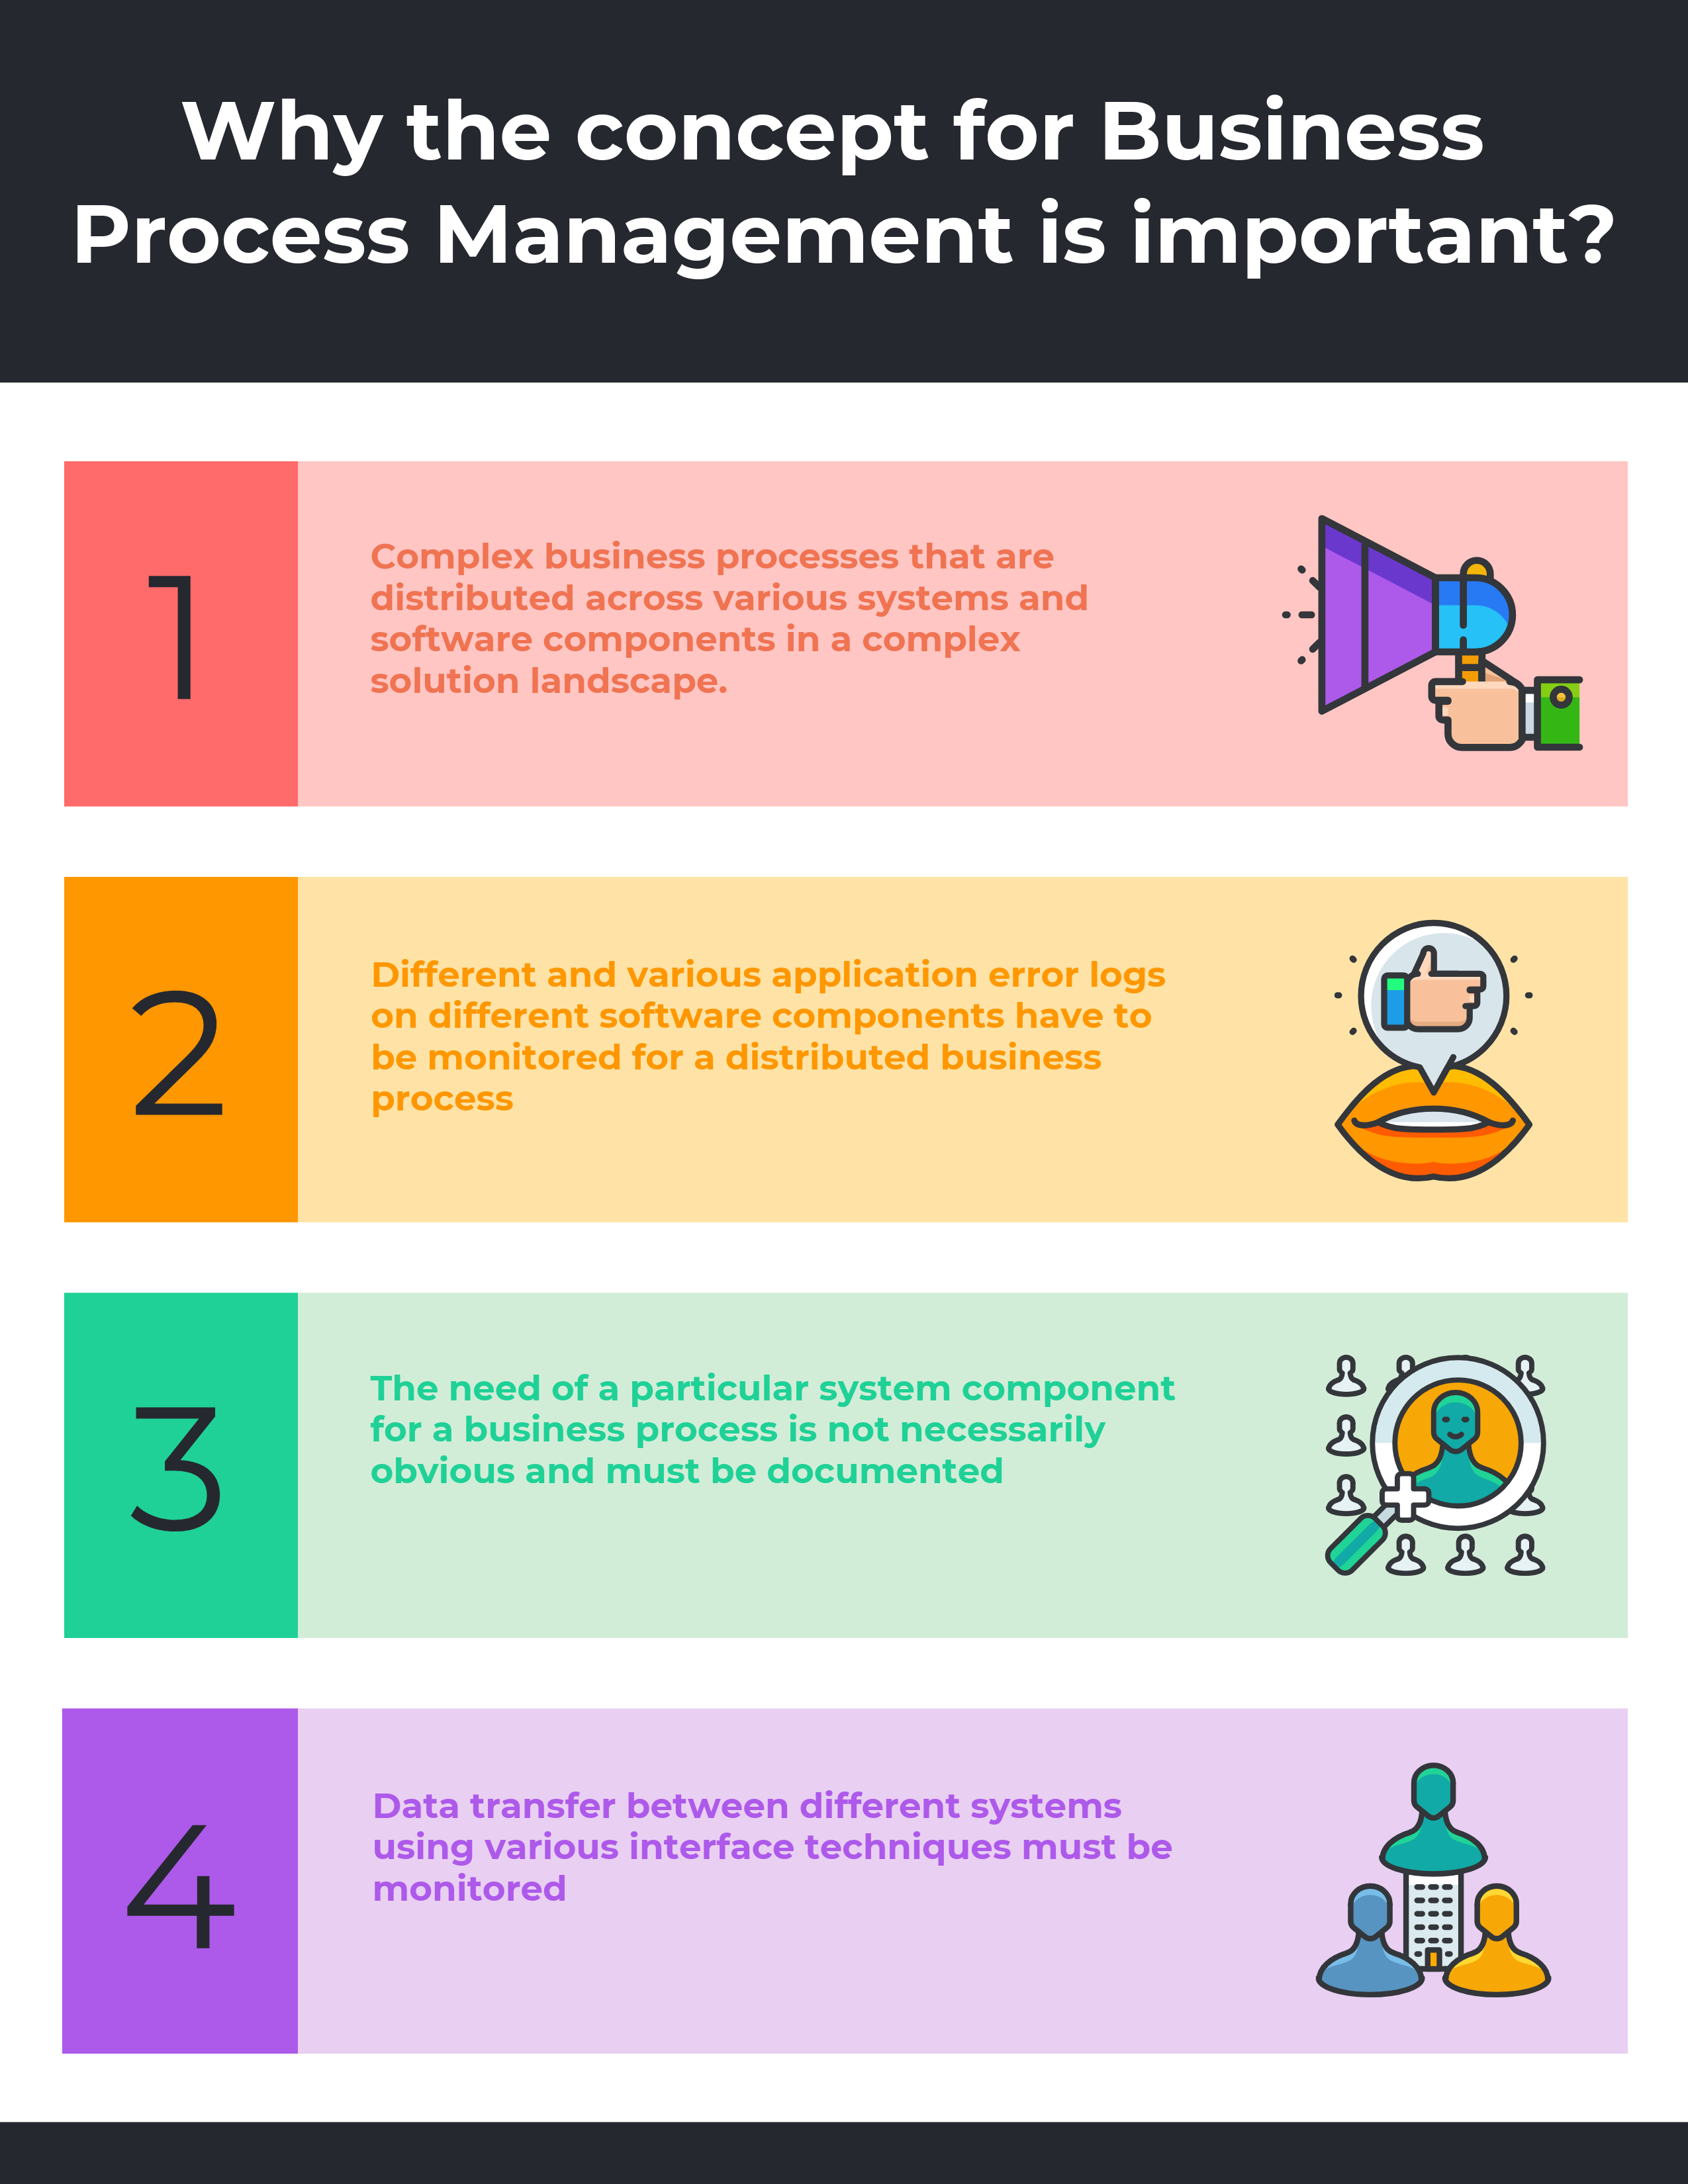 Why the concept for Business Process Management is important?